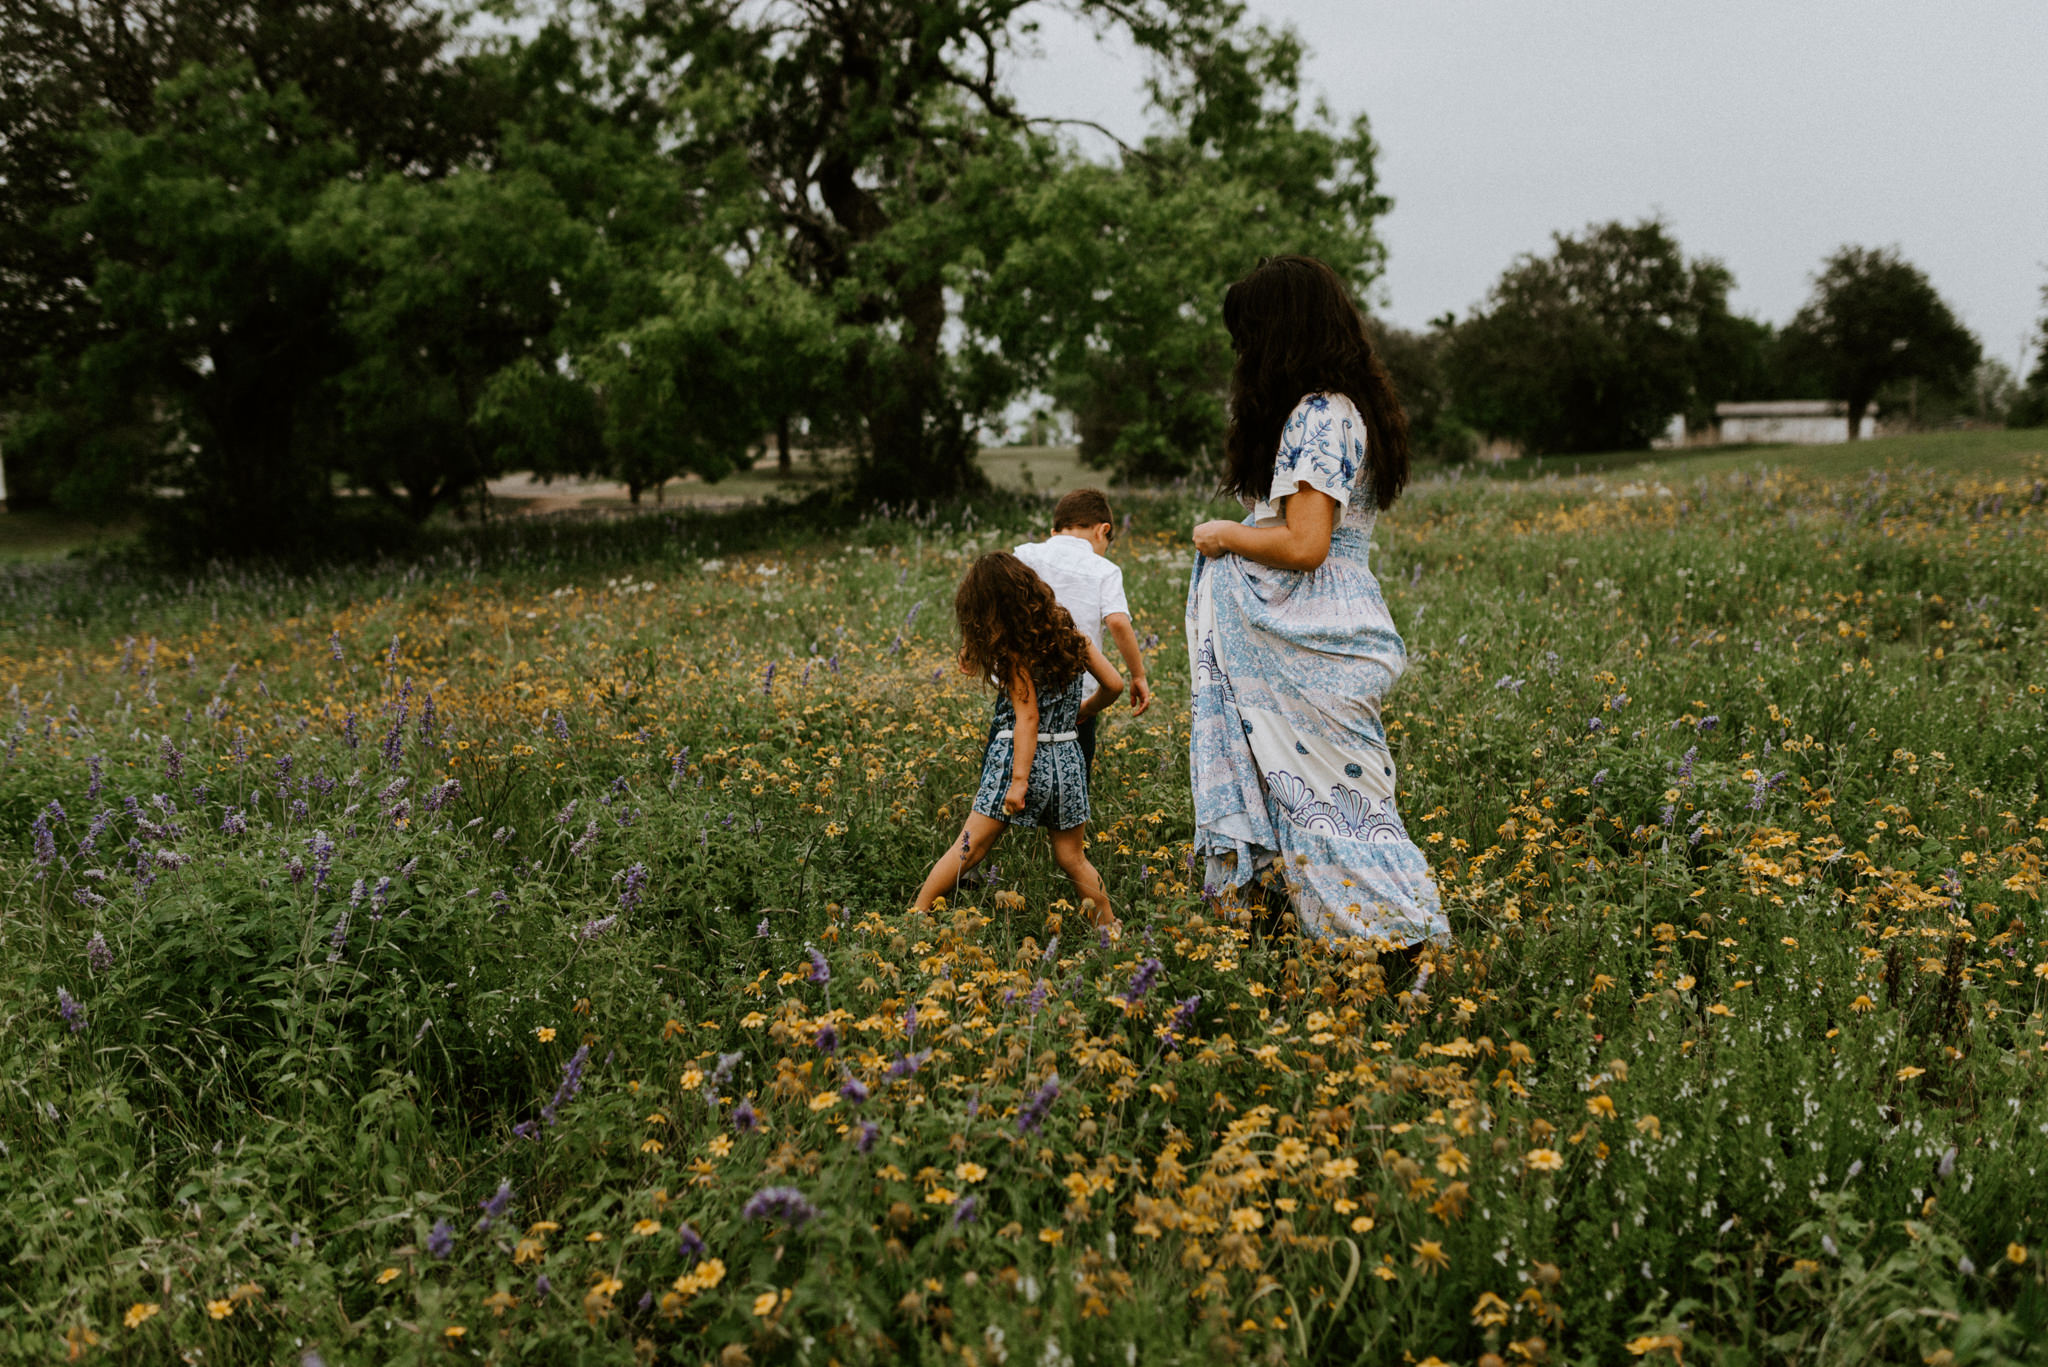 bohemian-forest-trail-flower-wildflower-fields-bluebonnets-fillyboo-maternity-session-goliad-state-park-texas-photographer-kerlyn-van-gelder-photography